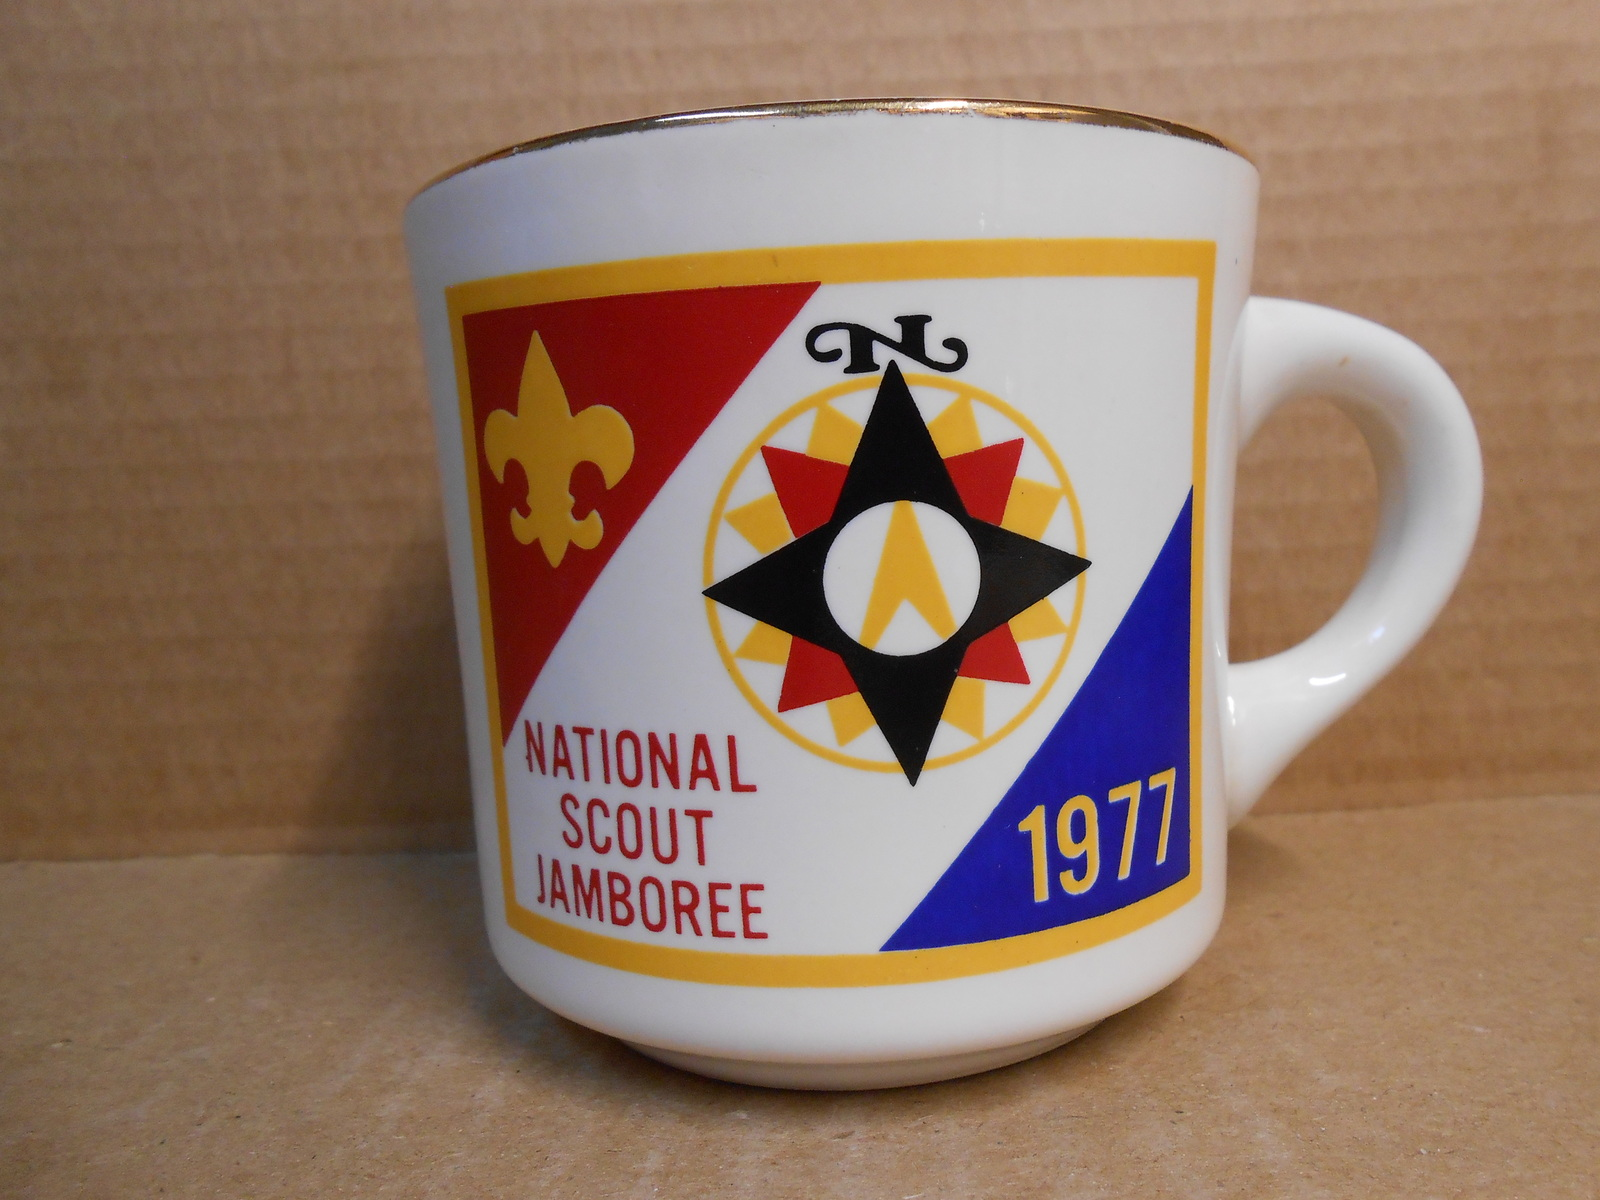 Primary image for NATIONAL SCOUT JAMBOREE 1977 CERAMIC MUG BOY SCOUTS OF AMERICA NEW MINT SM17